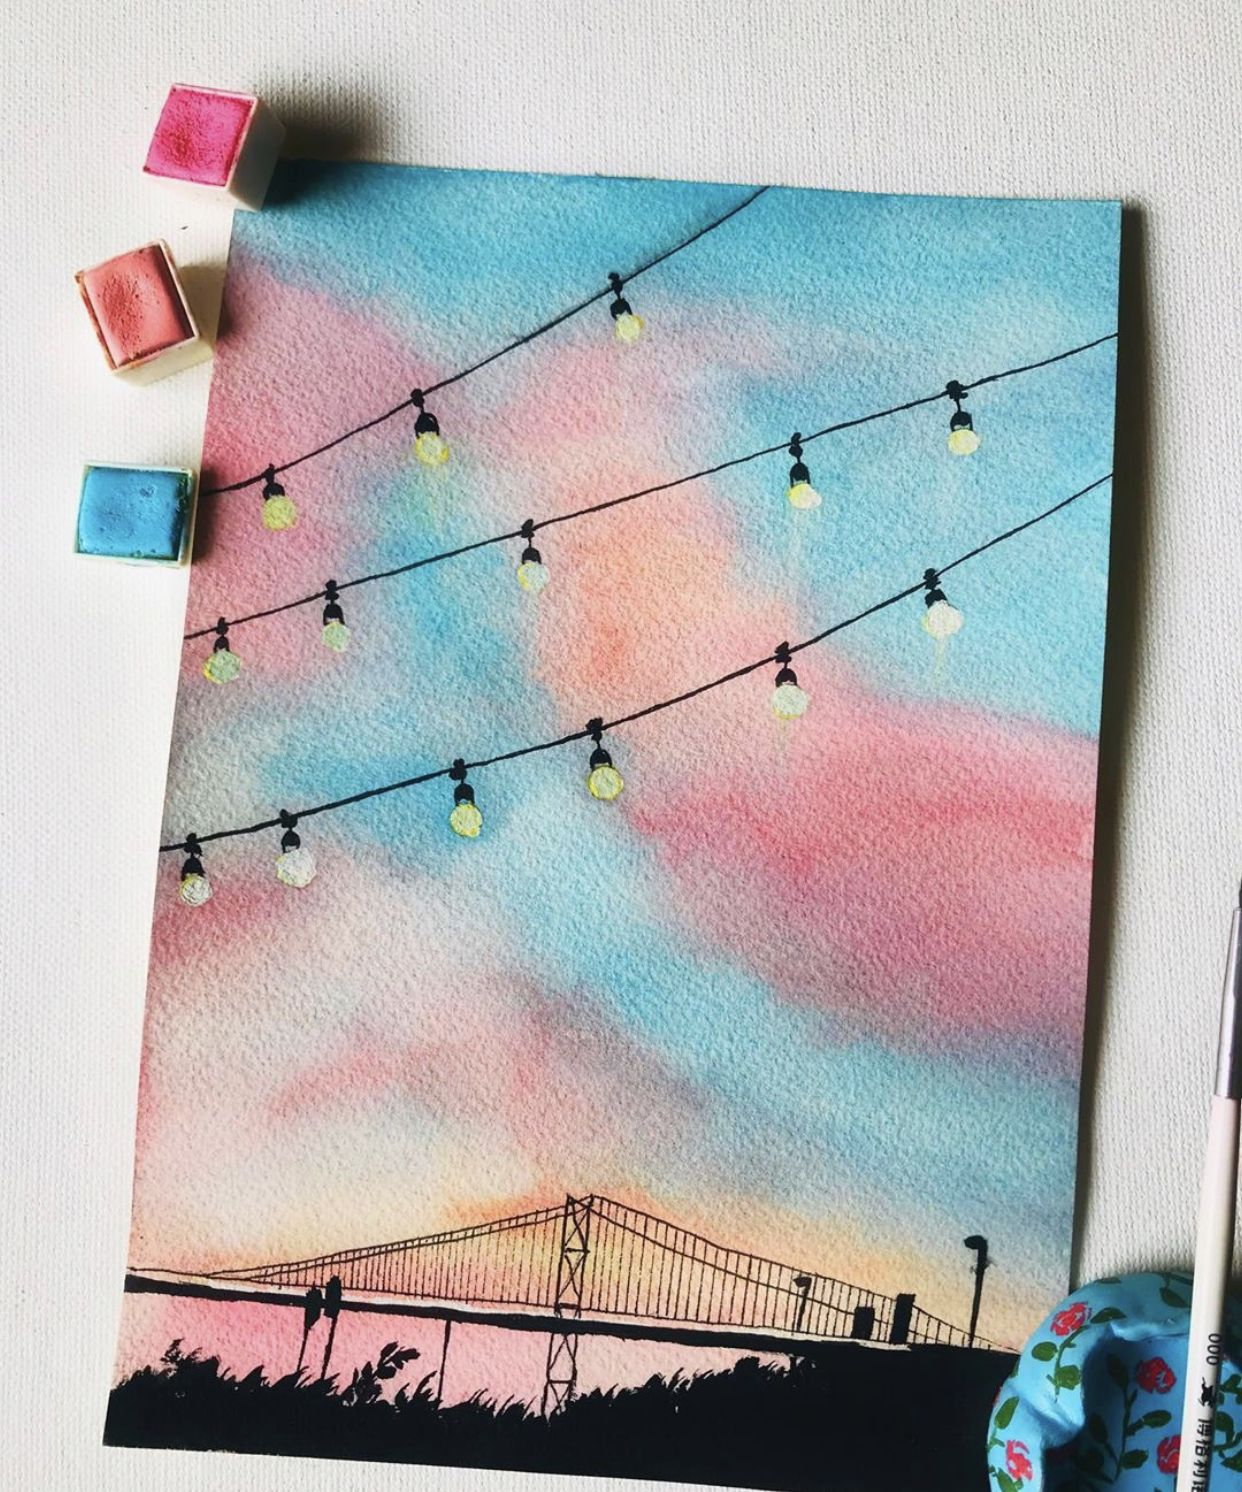 Pin By Paola Carrasquel On Art In 2020 Small Canvas Art Painting Art Projects Canvas Art Painting